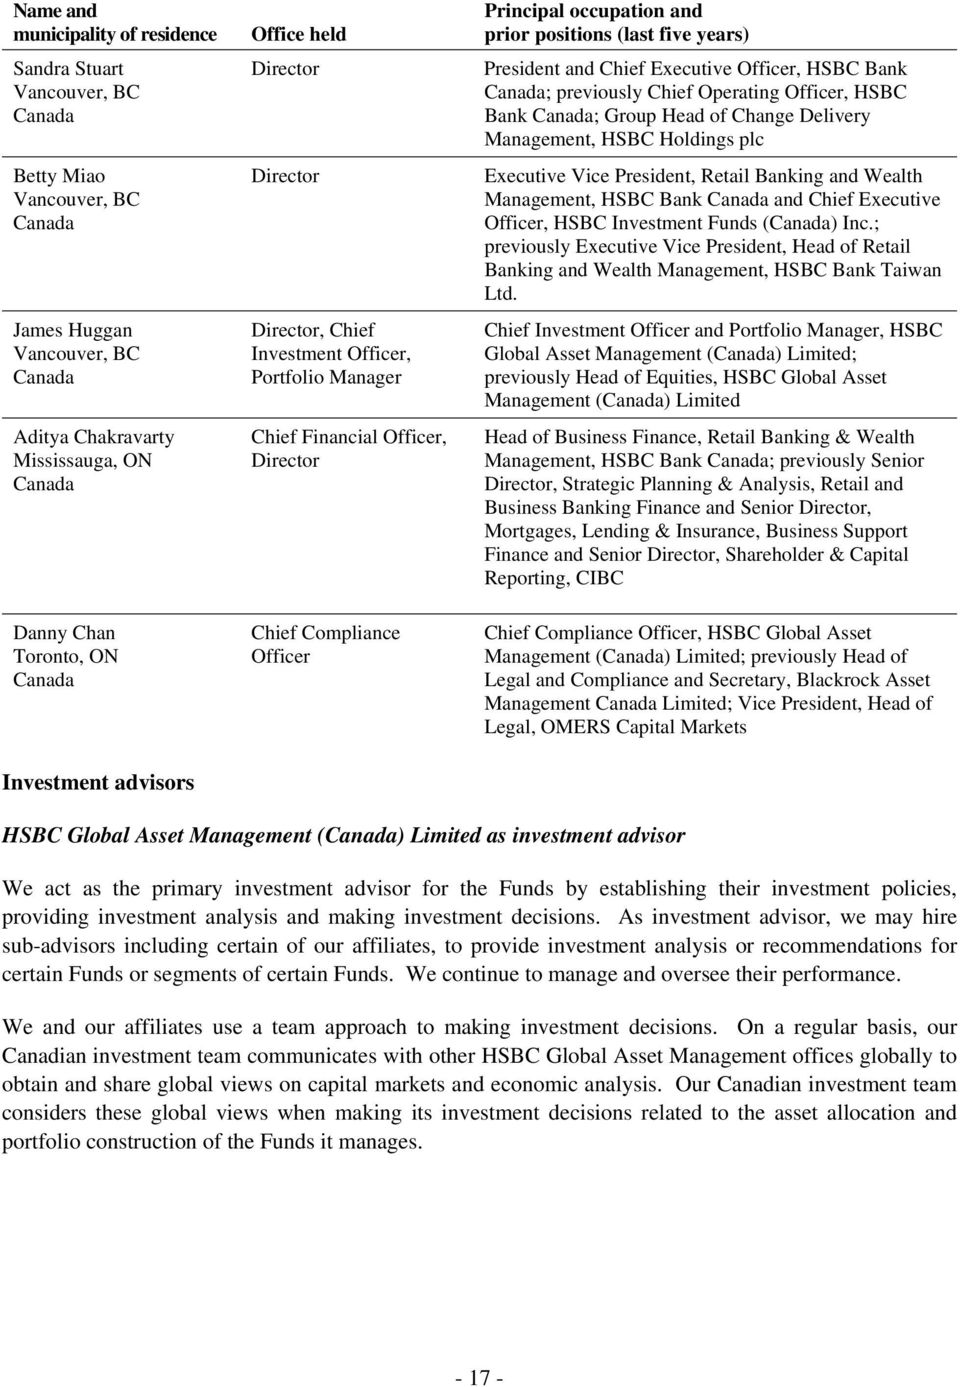 prior positions (last five years) President and Chief Executive Officer, HSBC Bank Canada; previously Chief Operating Officer, HSBC Bank Canada; Group Head of Change Delivery Management, HSBC